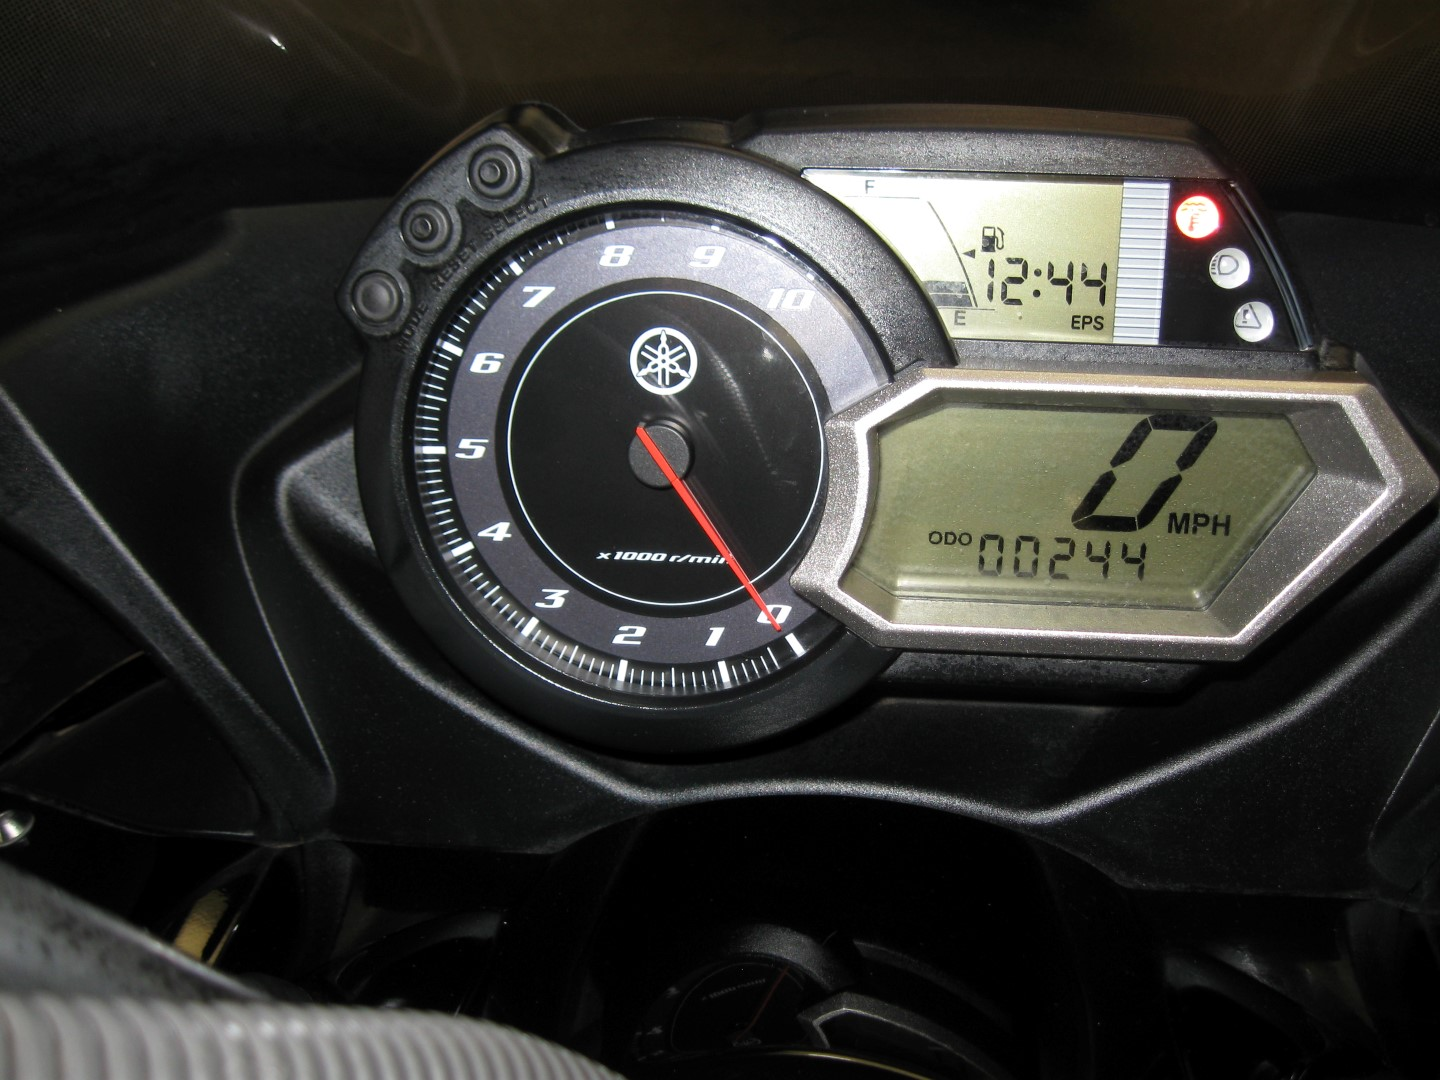 2012 Yamaha RS Vector Snowmobile gauges speedometer Minneapolis MN for sale